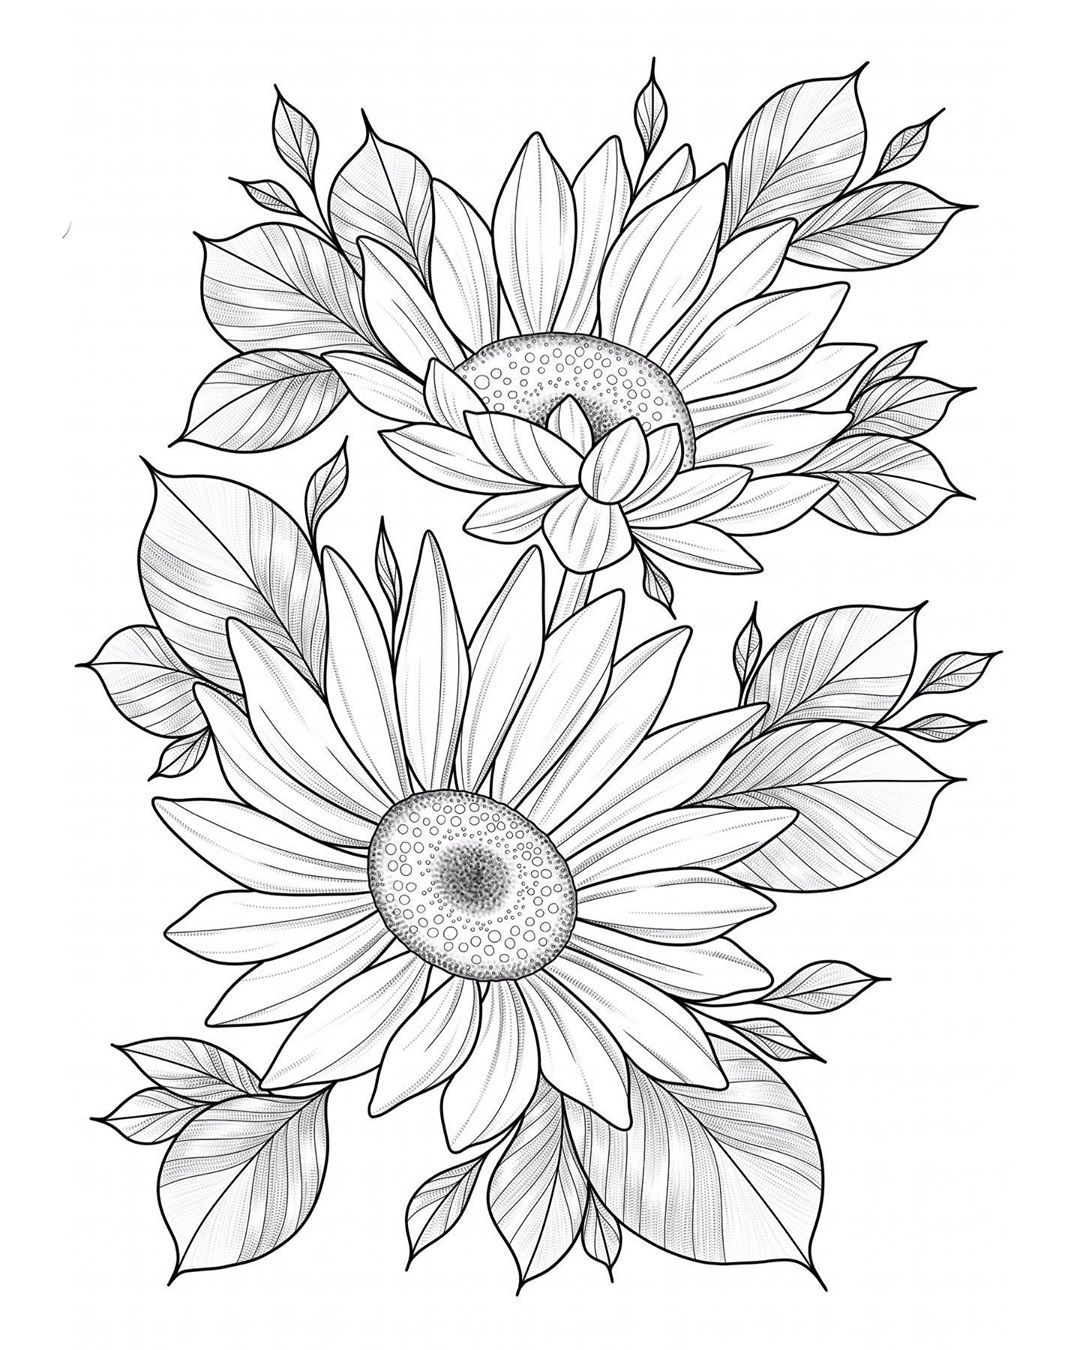 Neo Traditional Sunflower Tattoo : traditional, sunflower, tattoo, Sunflowers, Favourite, 🌻🌼, #tattoo, #tattooapprentice, #tattoodesign, #drawing, #create, #artist, #ill…, Flower, Coloring, Pages,, Tattoos,, Tattoo, Portfolio